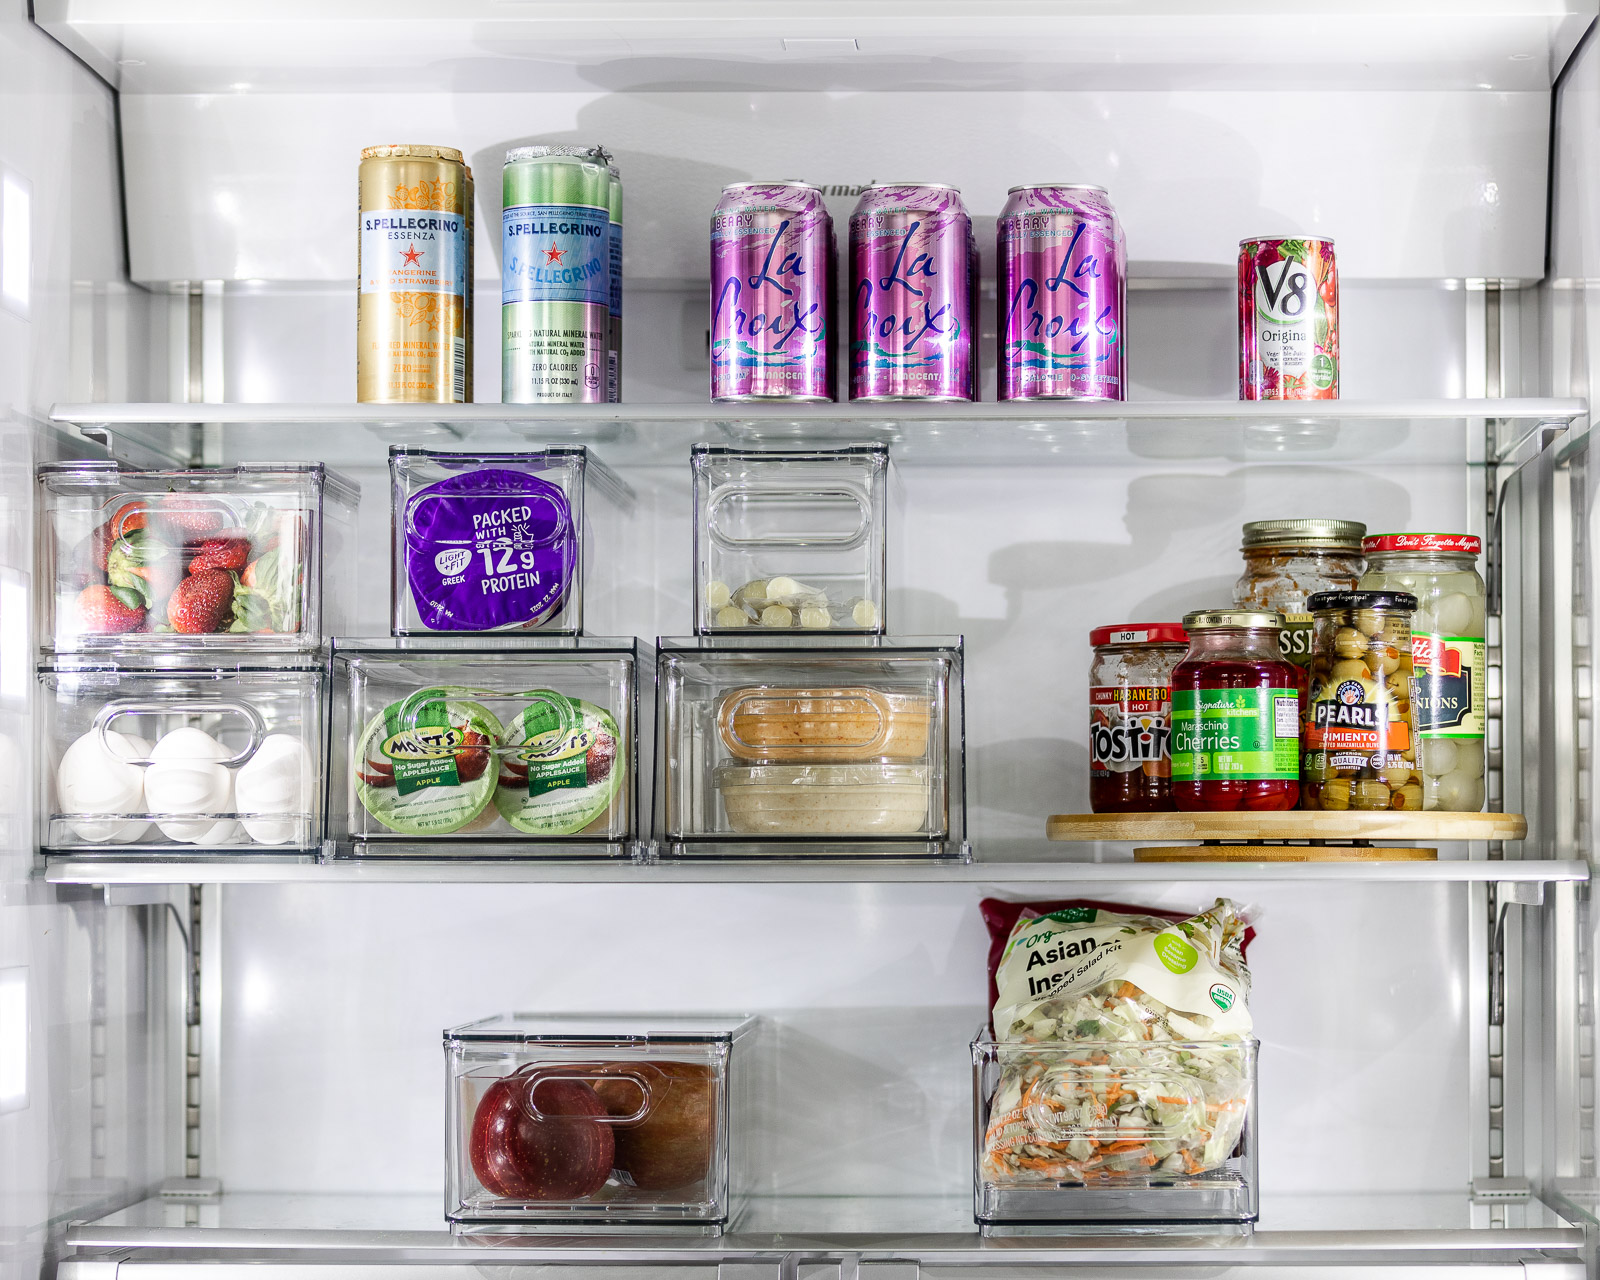 plastic-shelf-and-drawer-organizers-for-refrigerator-from-container-store-The-Glamorous-Gal